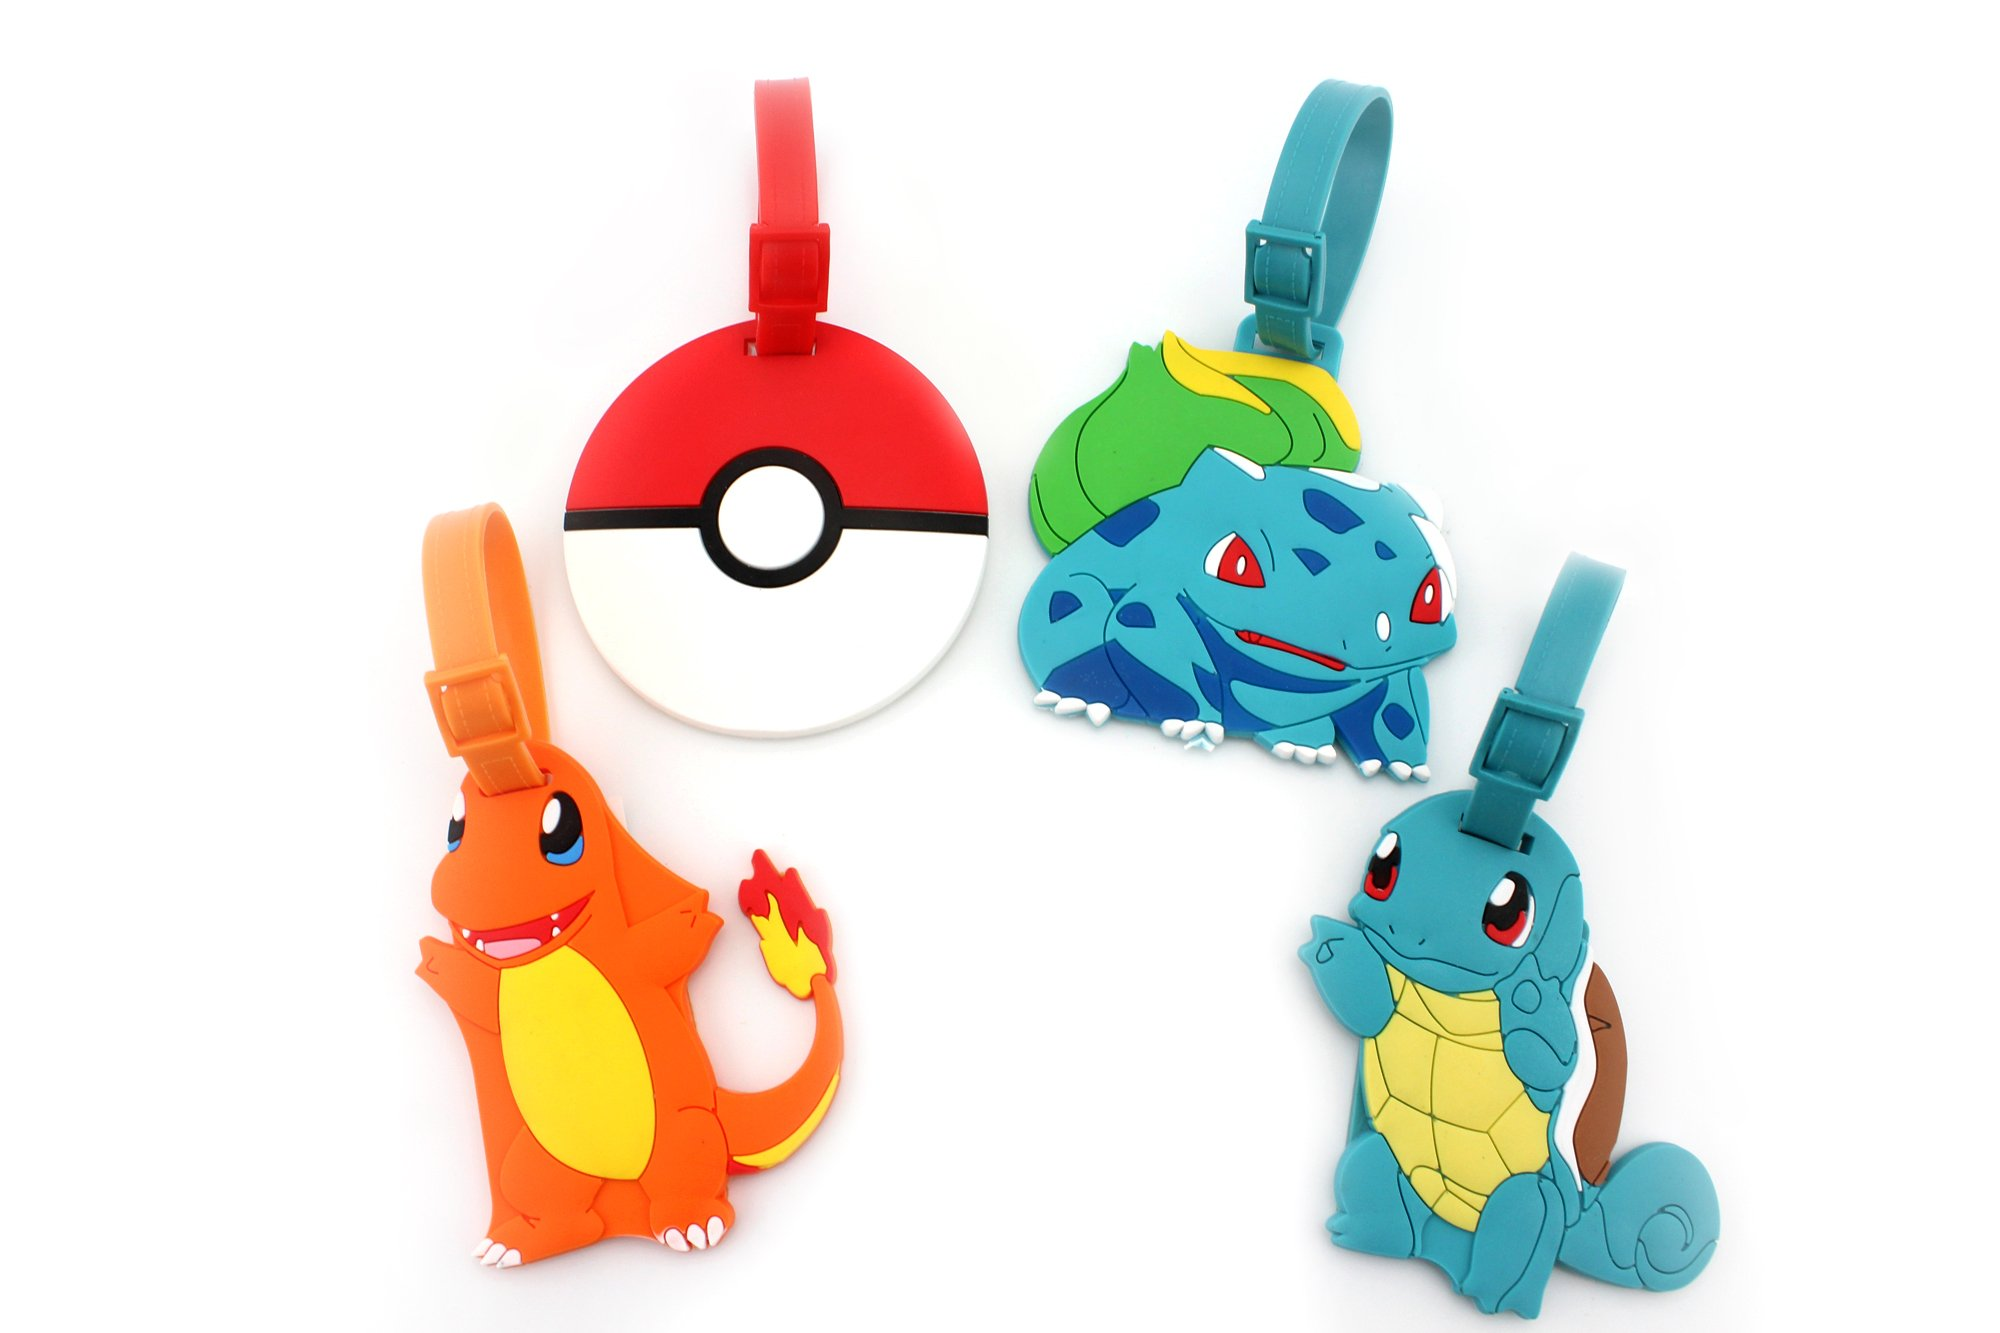 charmander bulbasaur and squirtle